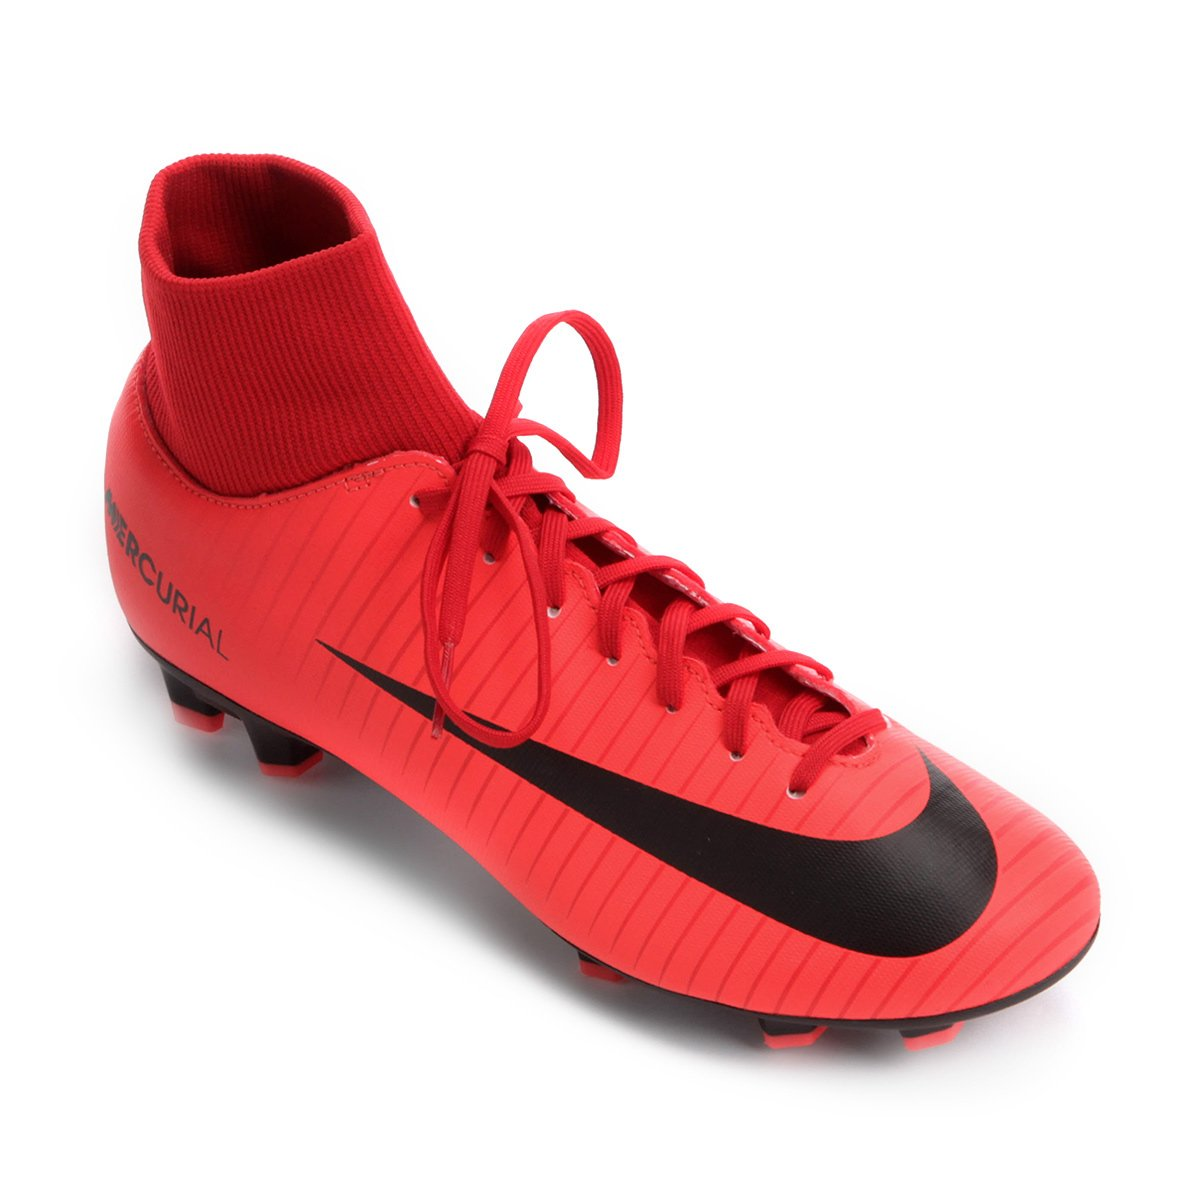 32cd3c90aa76e Chuteira Campo Nike Mercurial Victory 6 Dynamic Fit FG Masculina - Compre  Agora